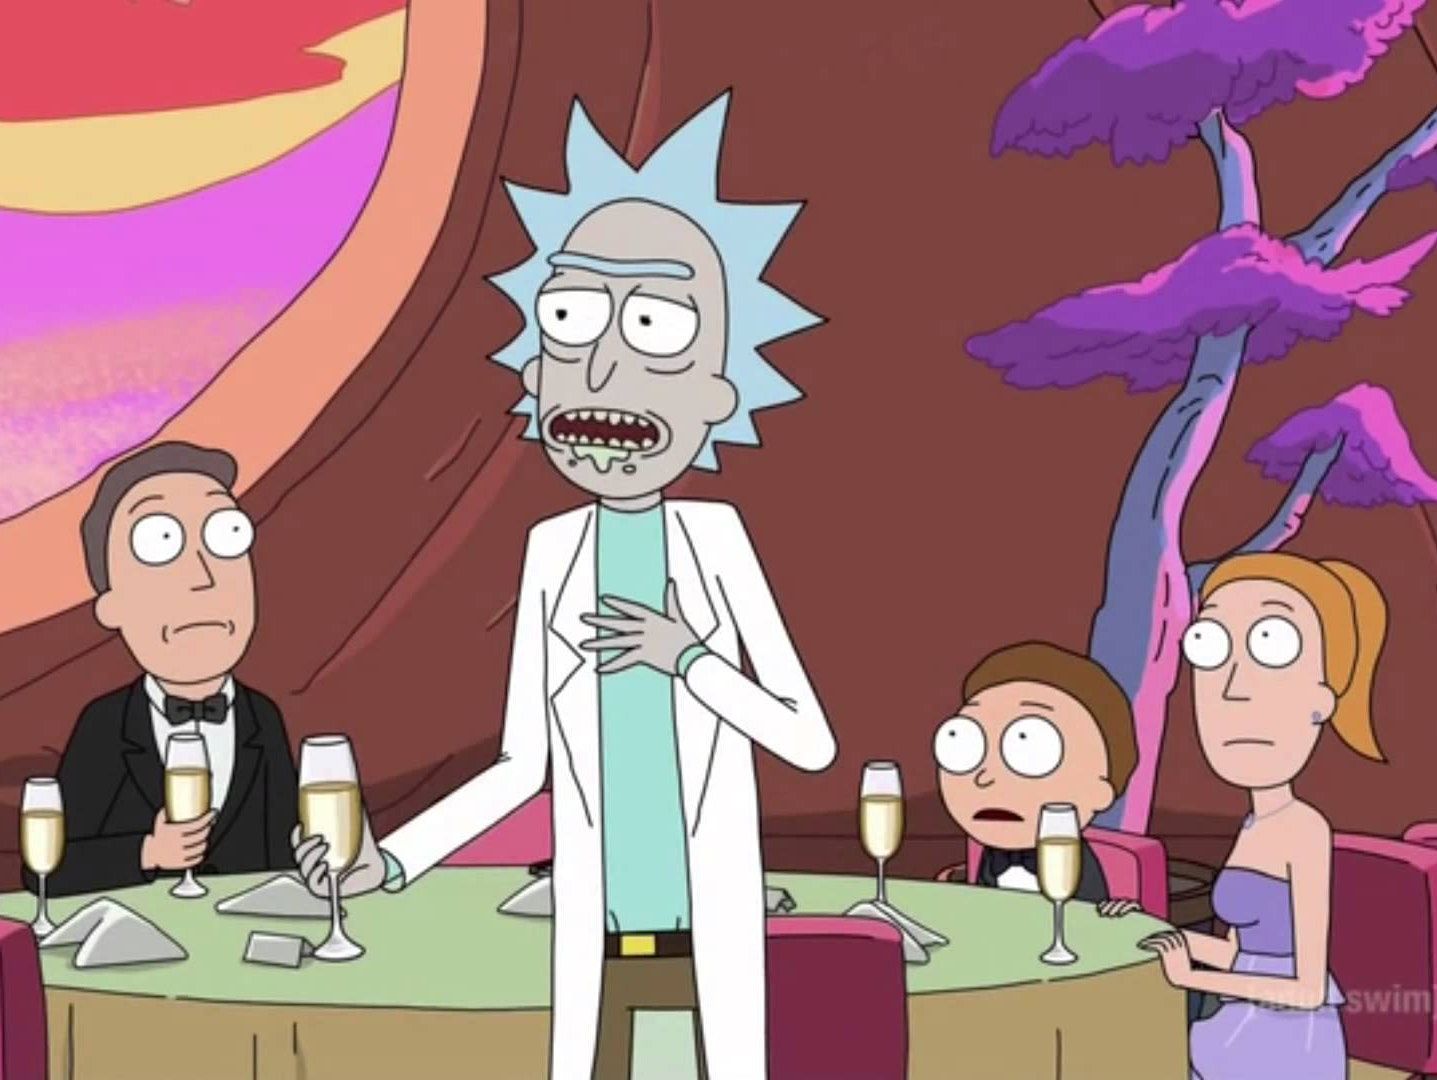 Best Rick And Morty Quotes The 11 Best Rick And Morty Quotes In Honor Of Season 3's Return